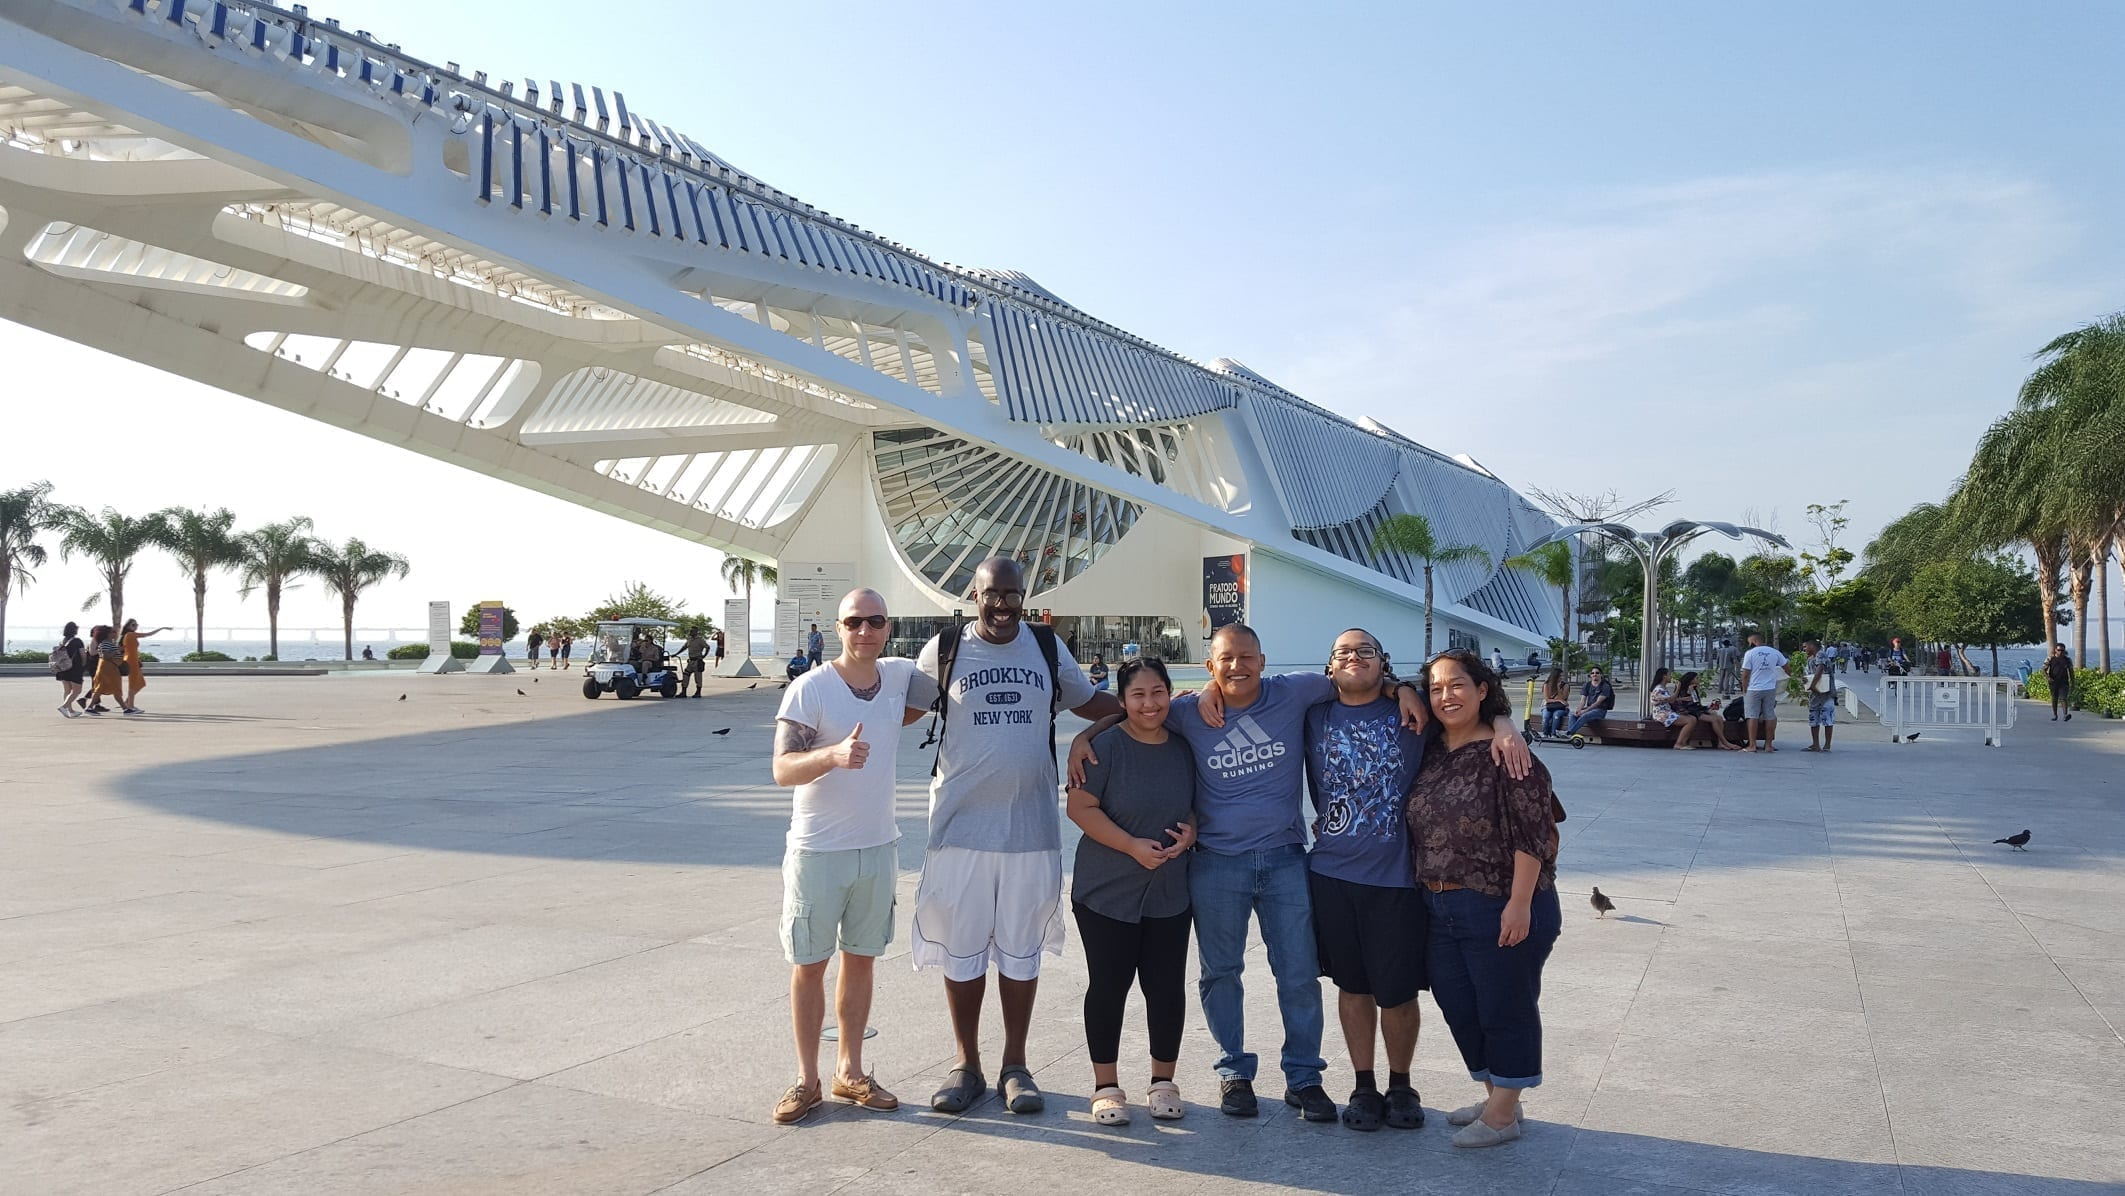 Taking a picture in front of the Museum of Tomorrow at Porto Maravilha with the Family